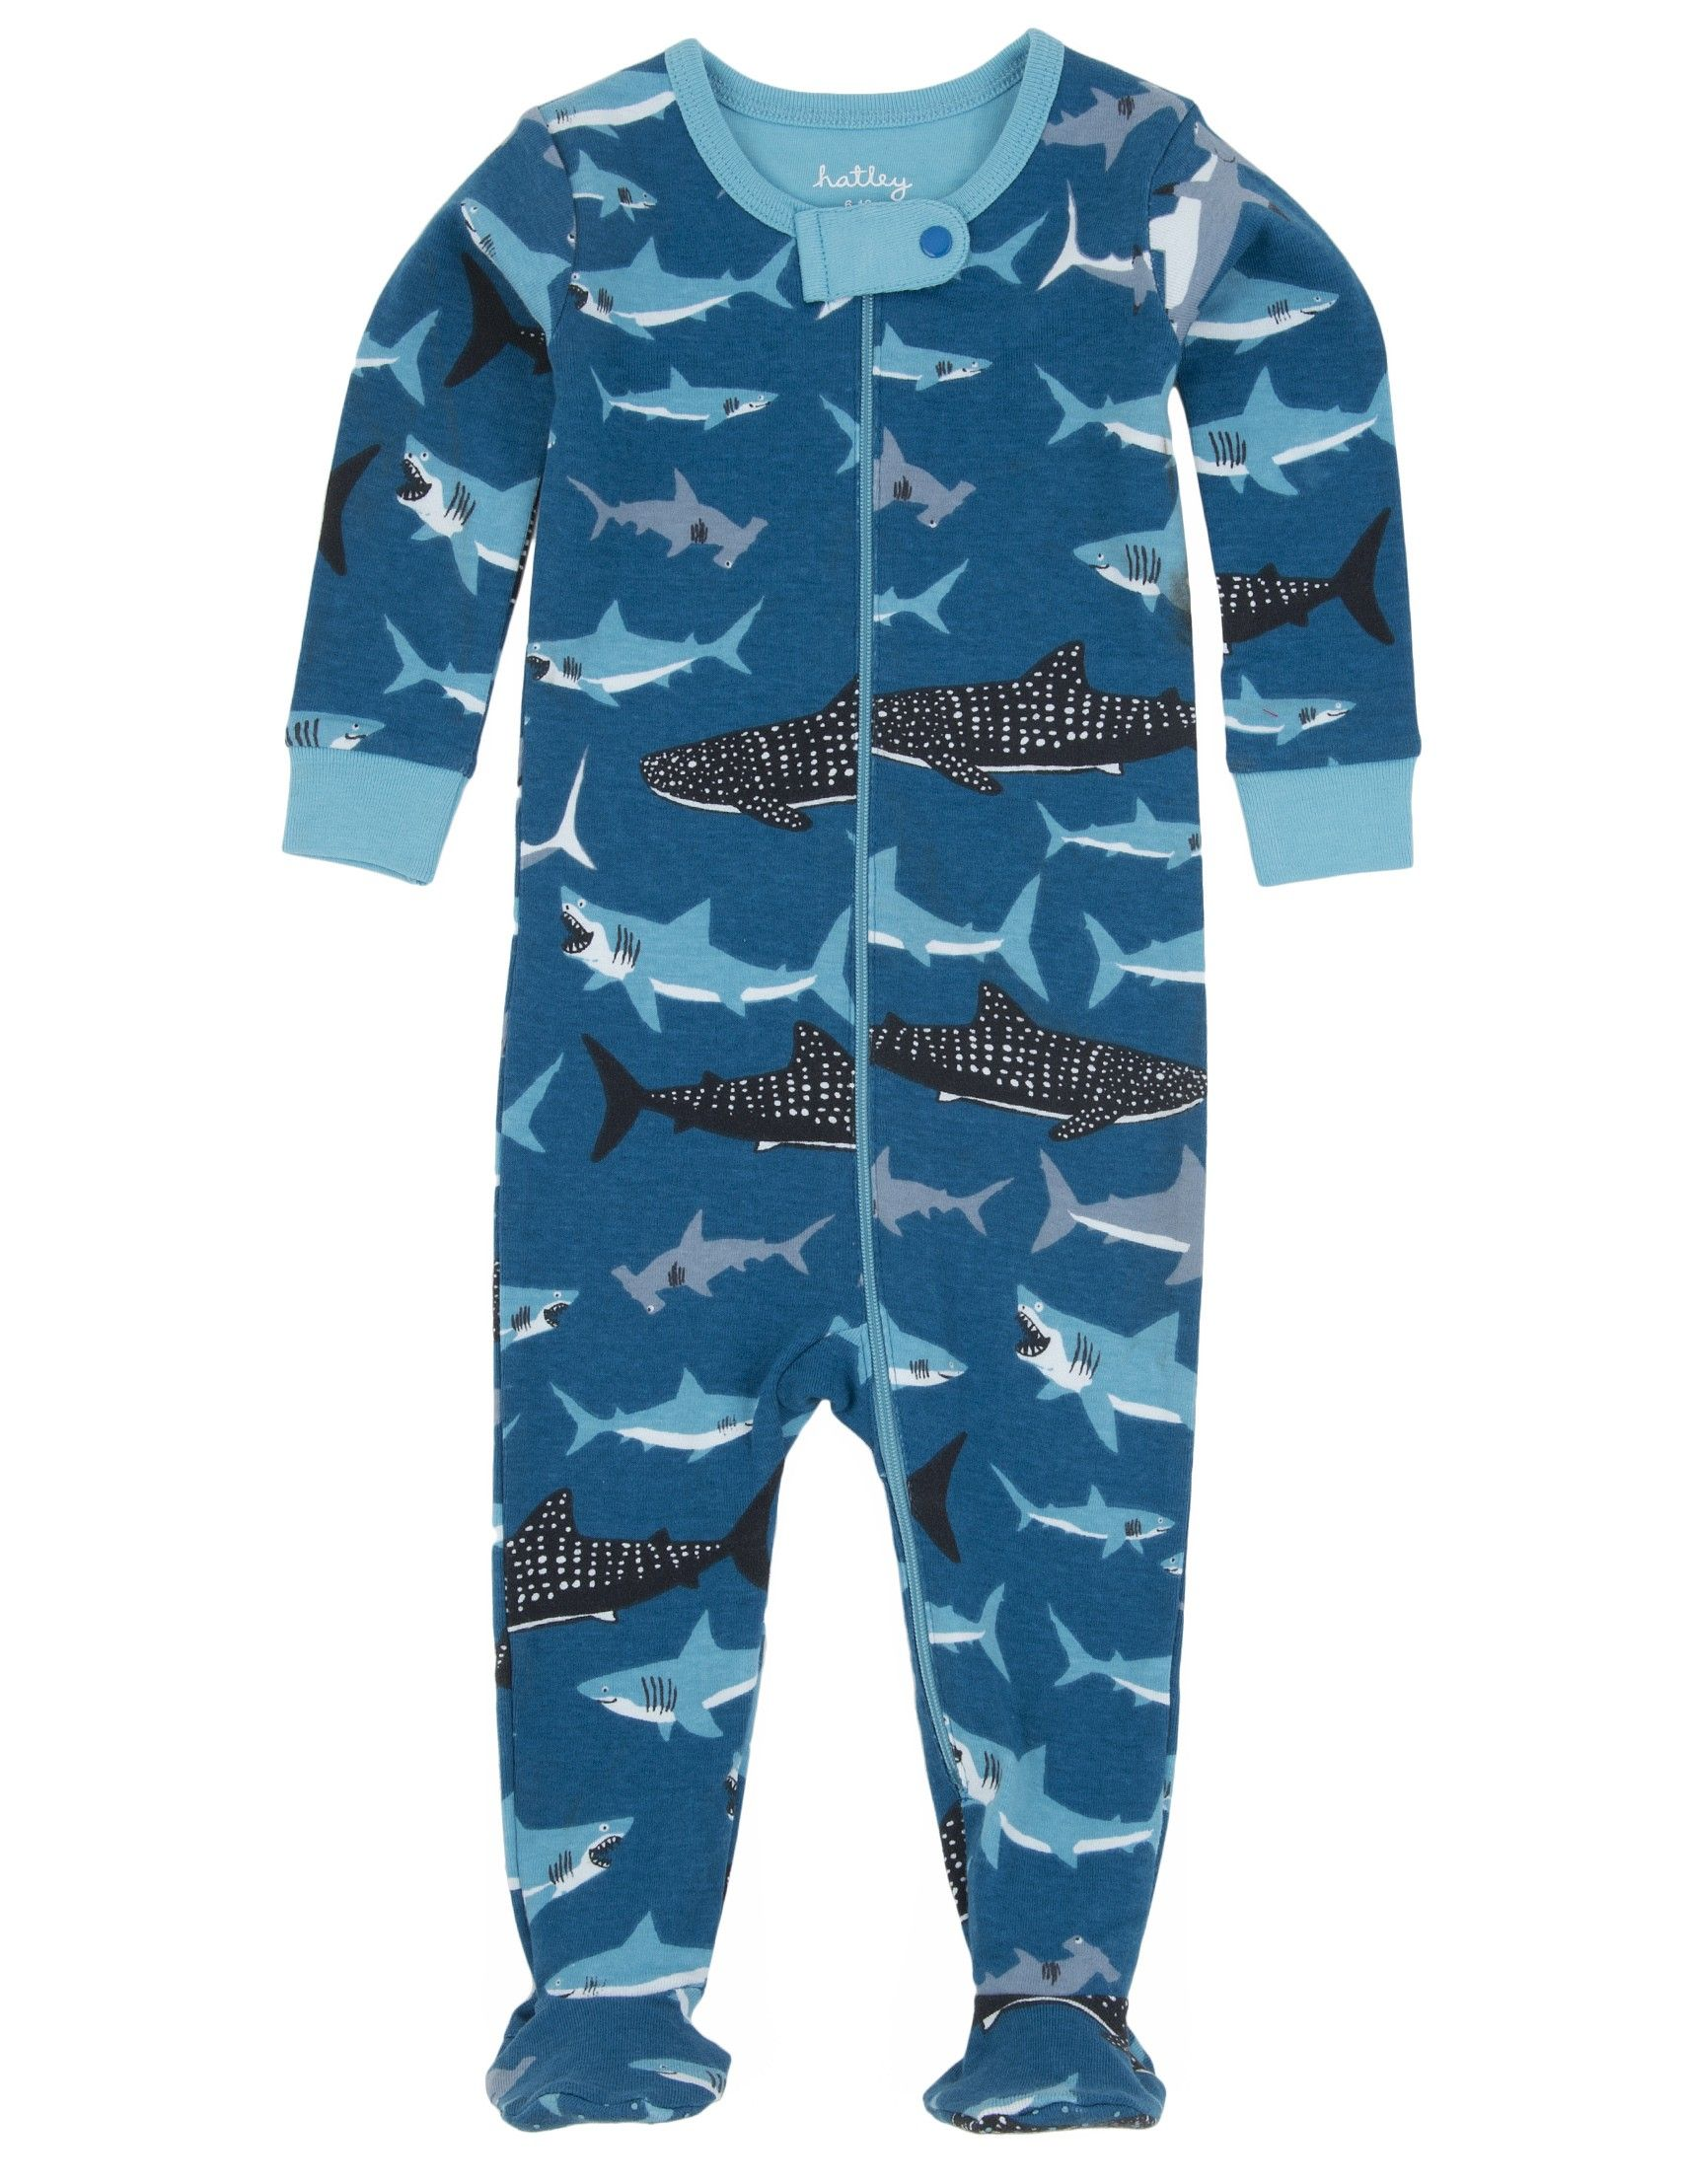 Features:All over sharks printSnug fittingFull length zipperEasy on and offSnap closure at neckNon-slip dots on solesContrast rib cuffsSizes: 0-3M, 3-6M, 6-12M, 12-18M, 18-24M. Check drop down list for size availability. 100% Cotton.